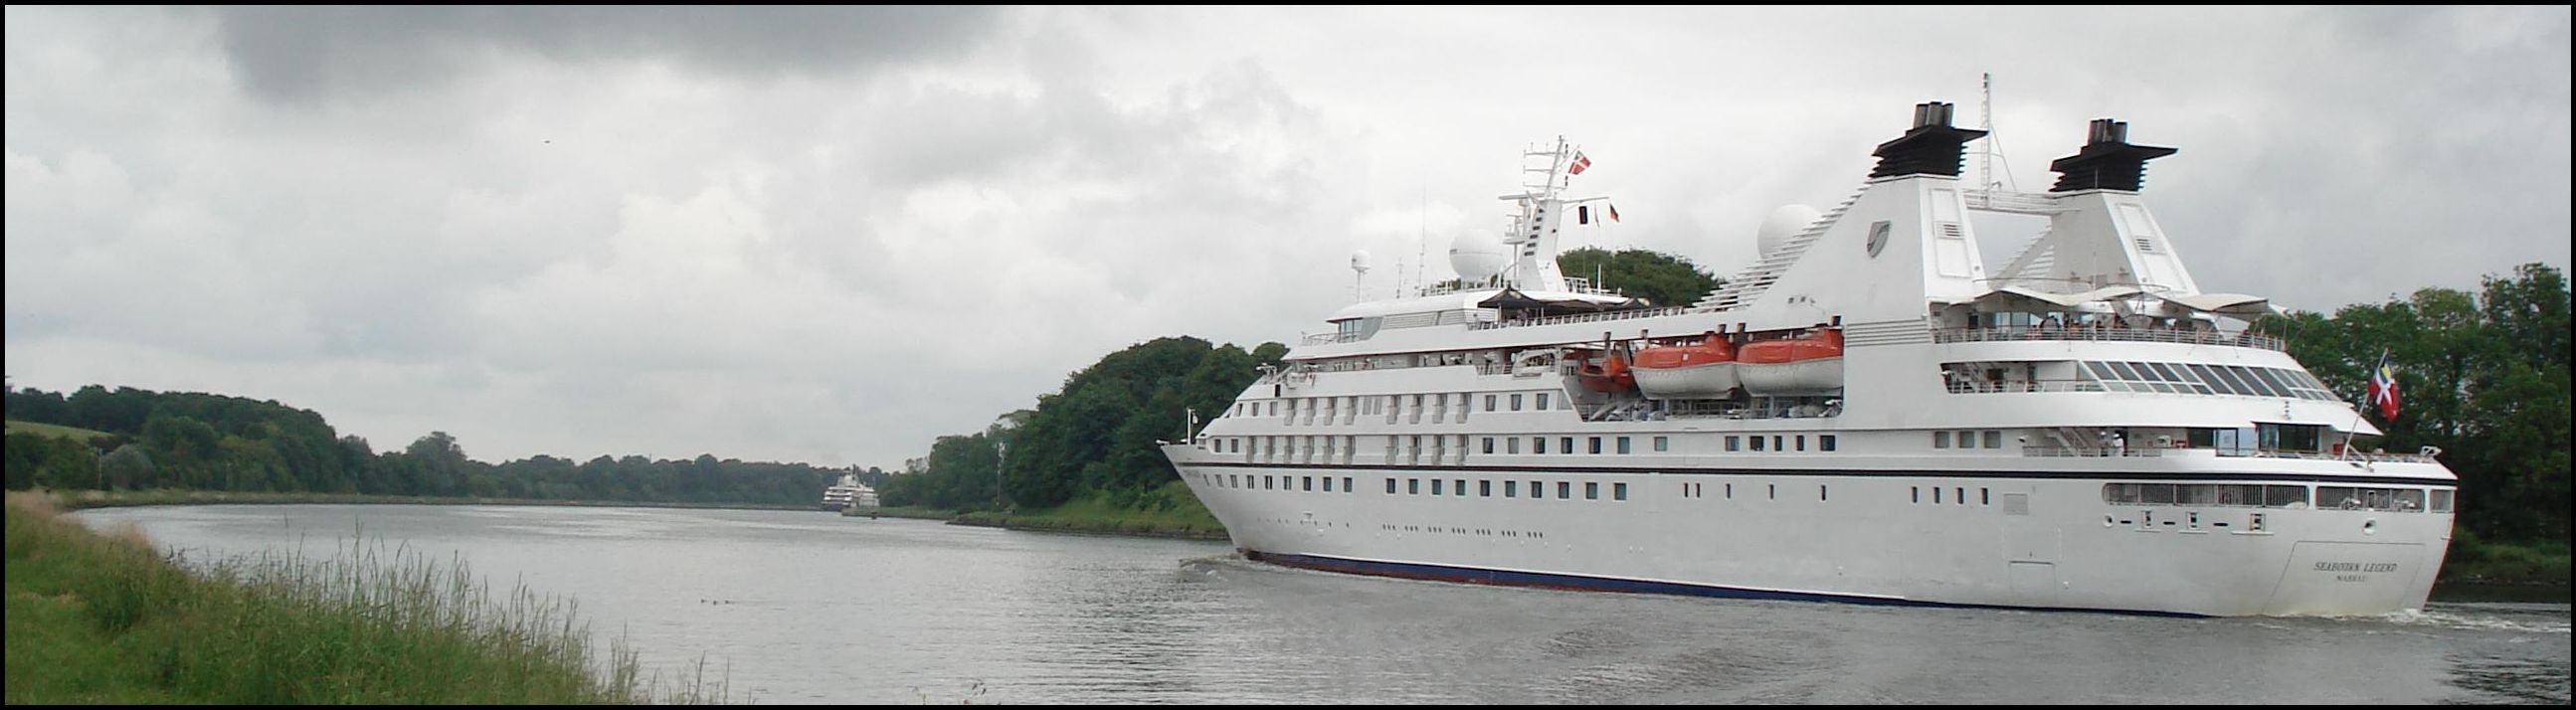 2014-06-01 Seabourn Legend